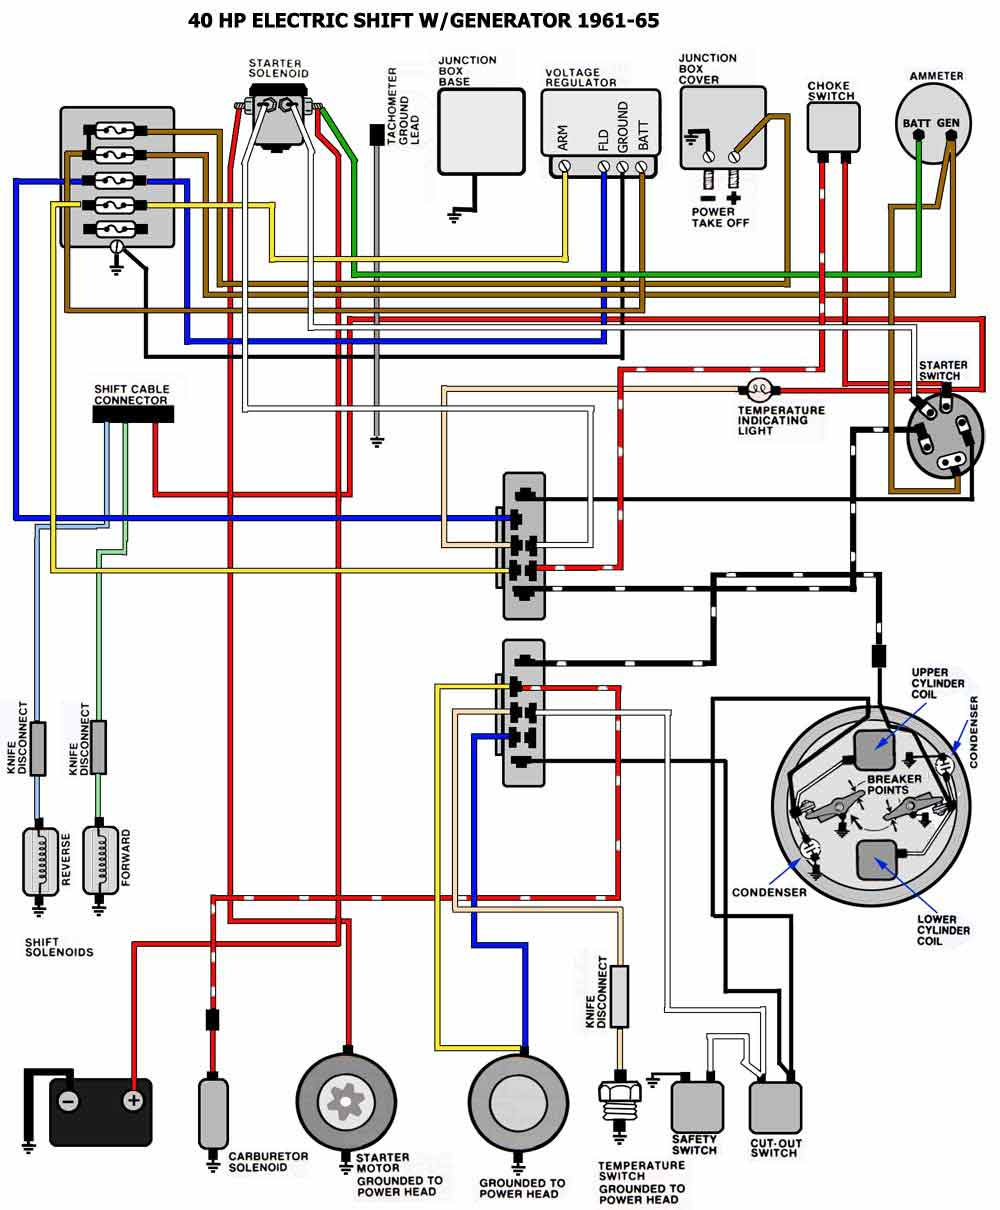 Honda 20 Hp Wiring Diagram Libraries Gx620 Carburetor P Johnson Motor Third Level50 Diagrams